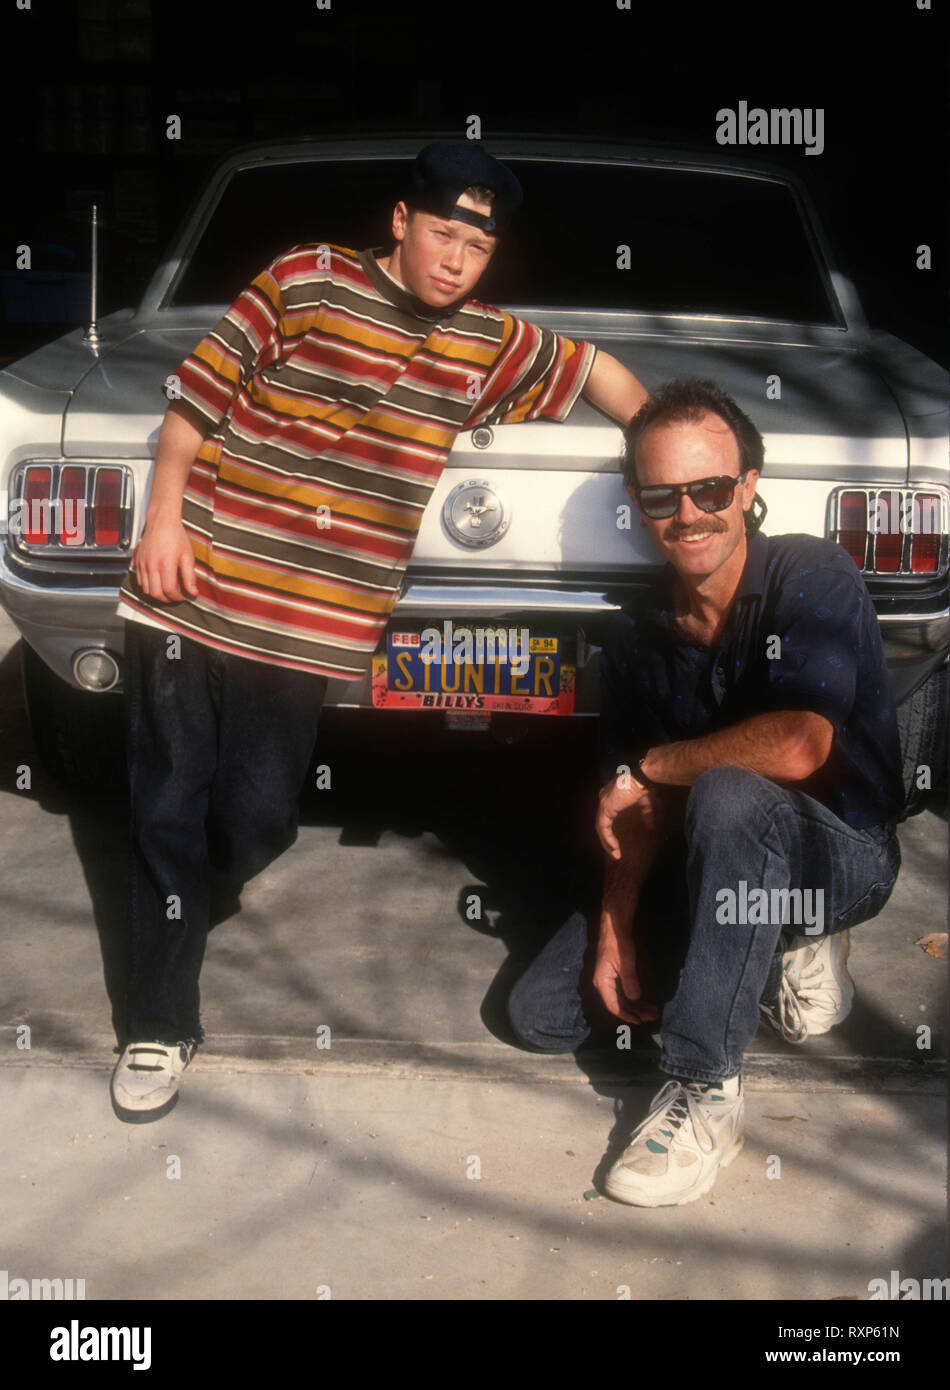 LOS ANGELES, CA - FEBRUARY 13: (EXCLUSIVE) Stuntman/actor Mickey Cassidy and his father stuntman Michael Cassidy pose at a photo shoot on February 13, 1994 in Los Angeles, California. Photo by Barry King/Alamy Stock Photo - Stock Image